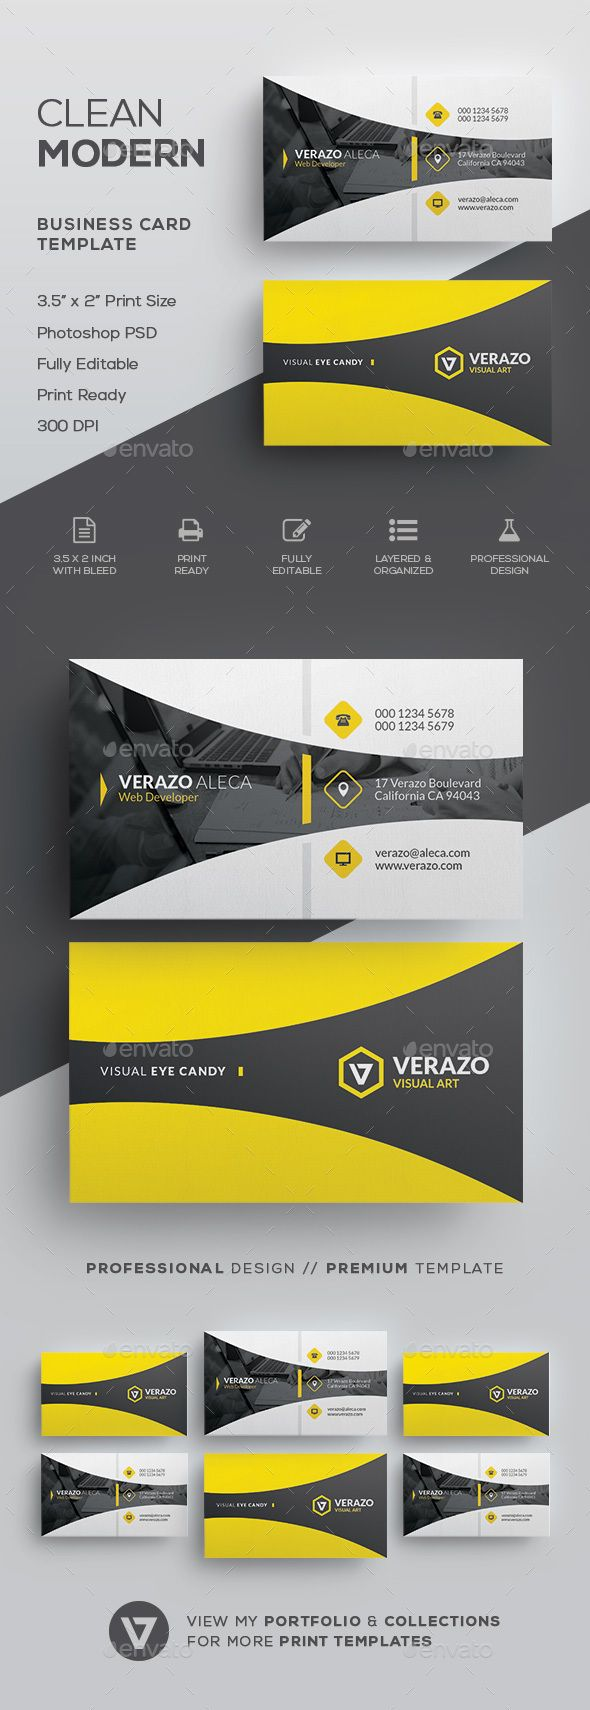 Clean Modern Business Card Template - Corporate Business Cards Download here : g...